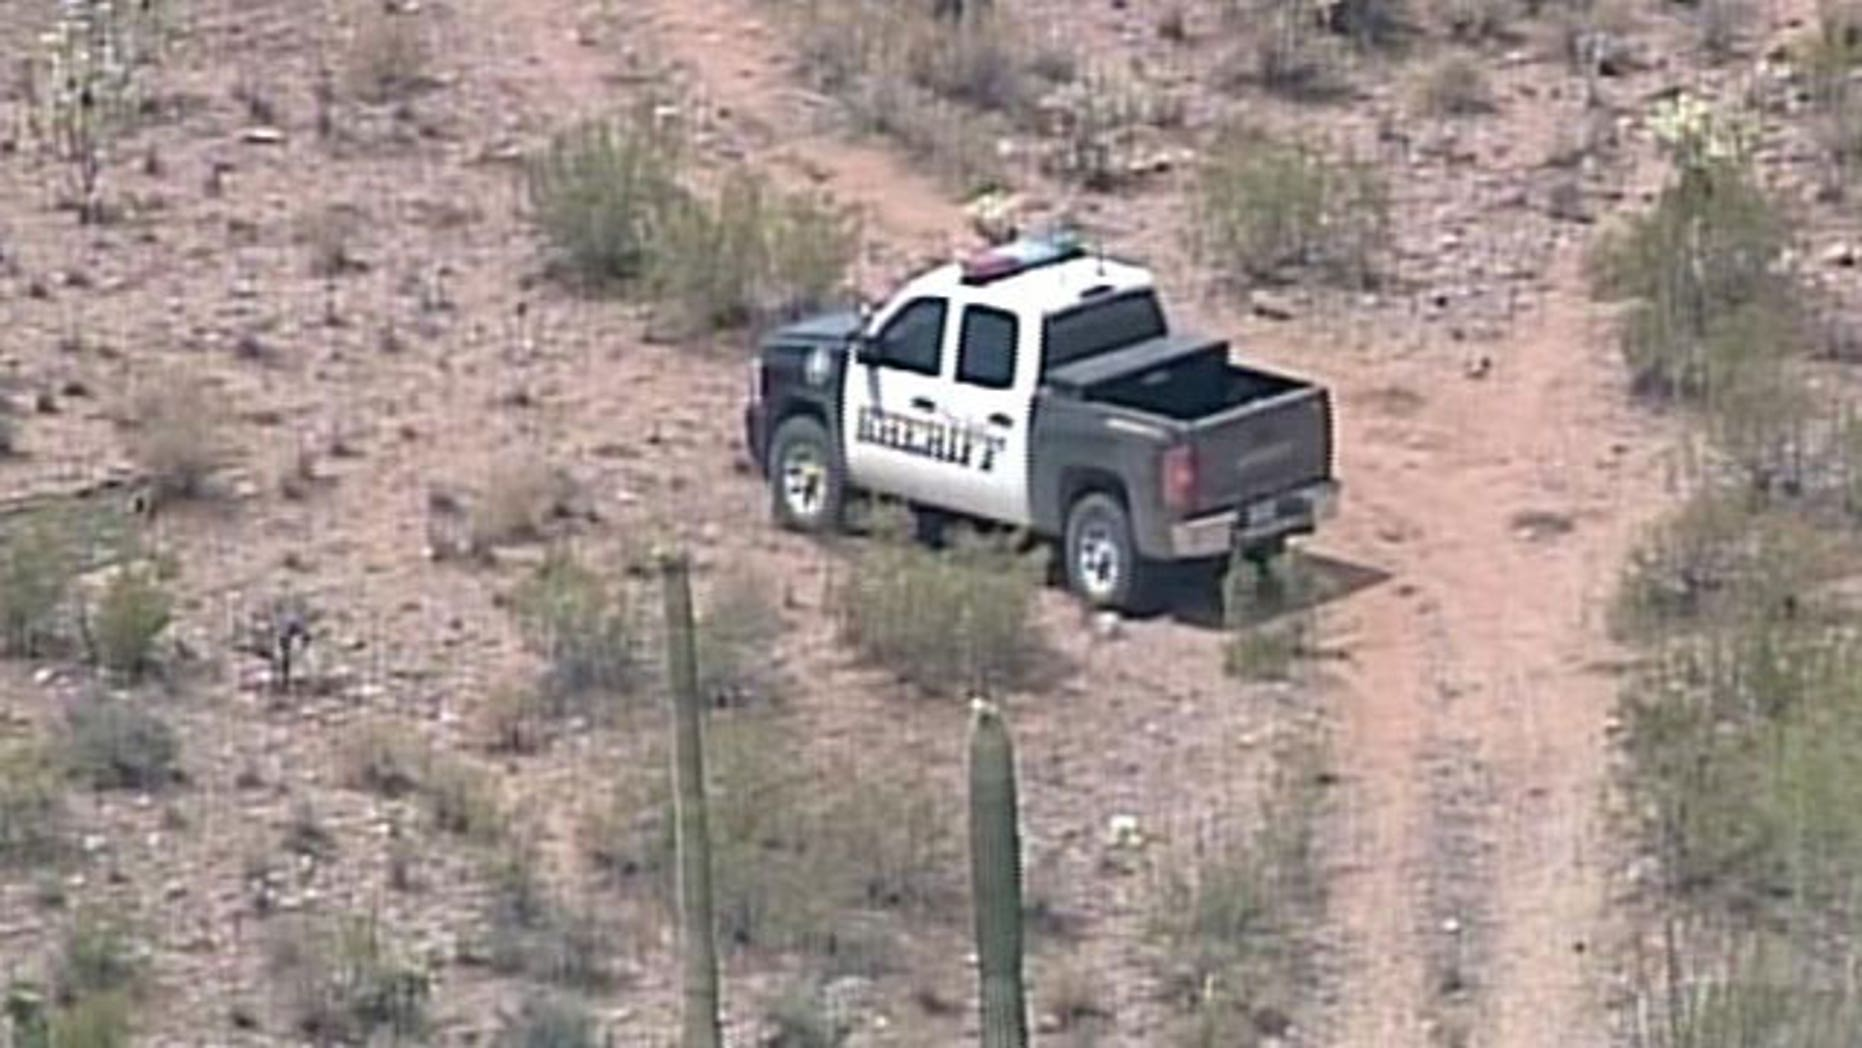 Arizona authorities reportedly found two bodies near a common border crossing Sunday, not far from where a police deputy was shot last April (MyFoxPhoenix.com).